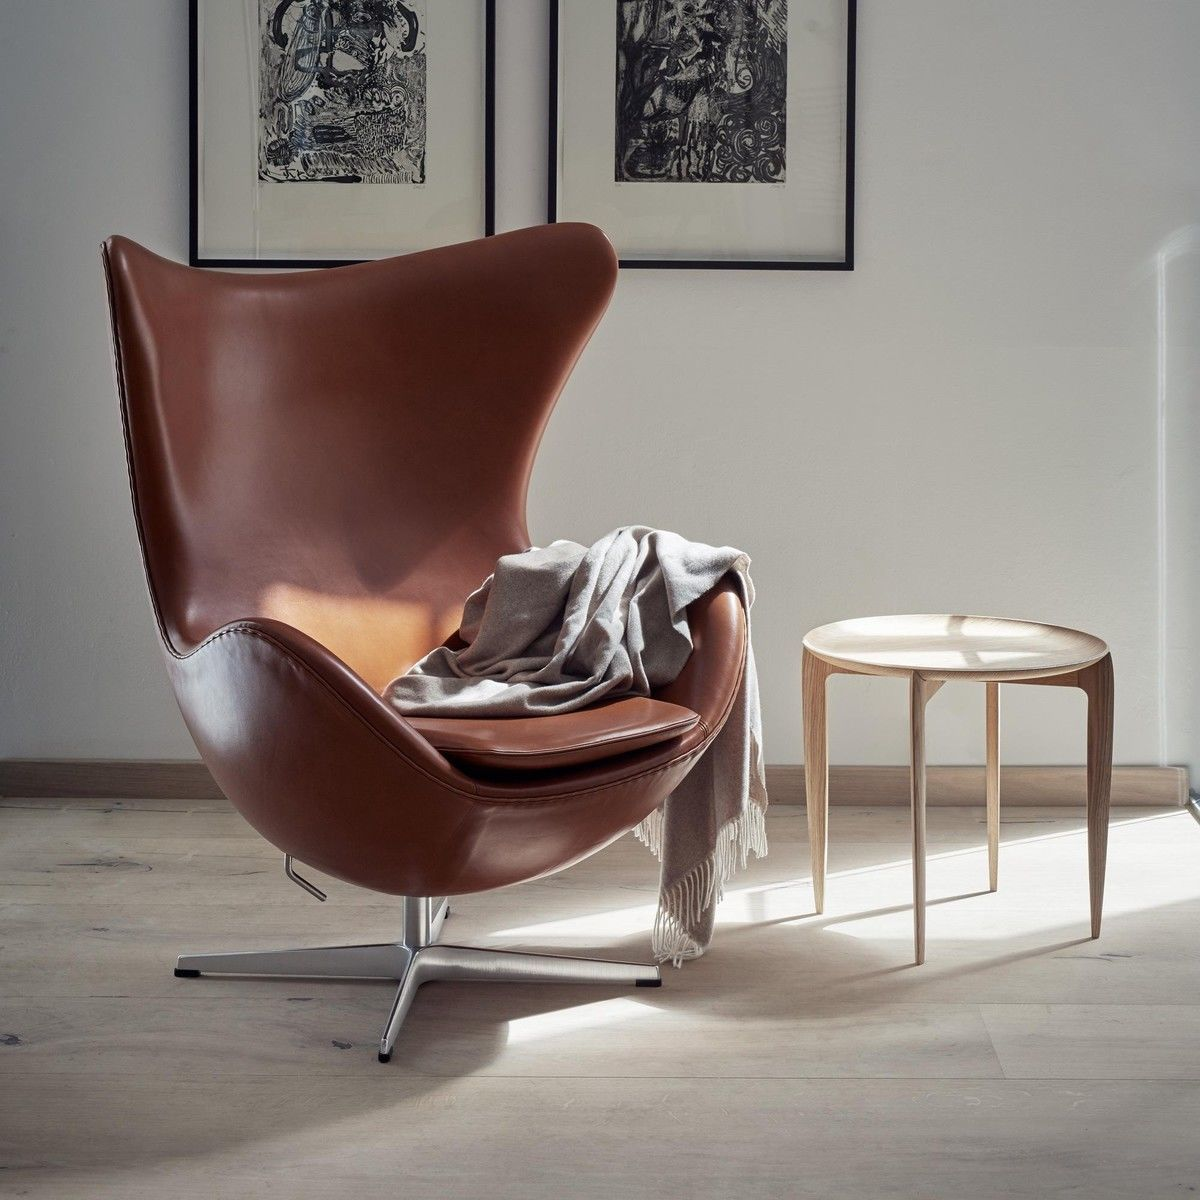 egg chair loungechair leather fritz hansen. Black Bedroom Furniture Sets. Home Design Ideas